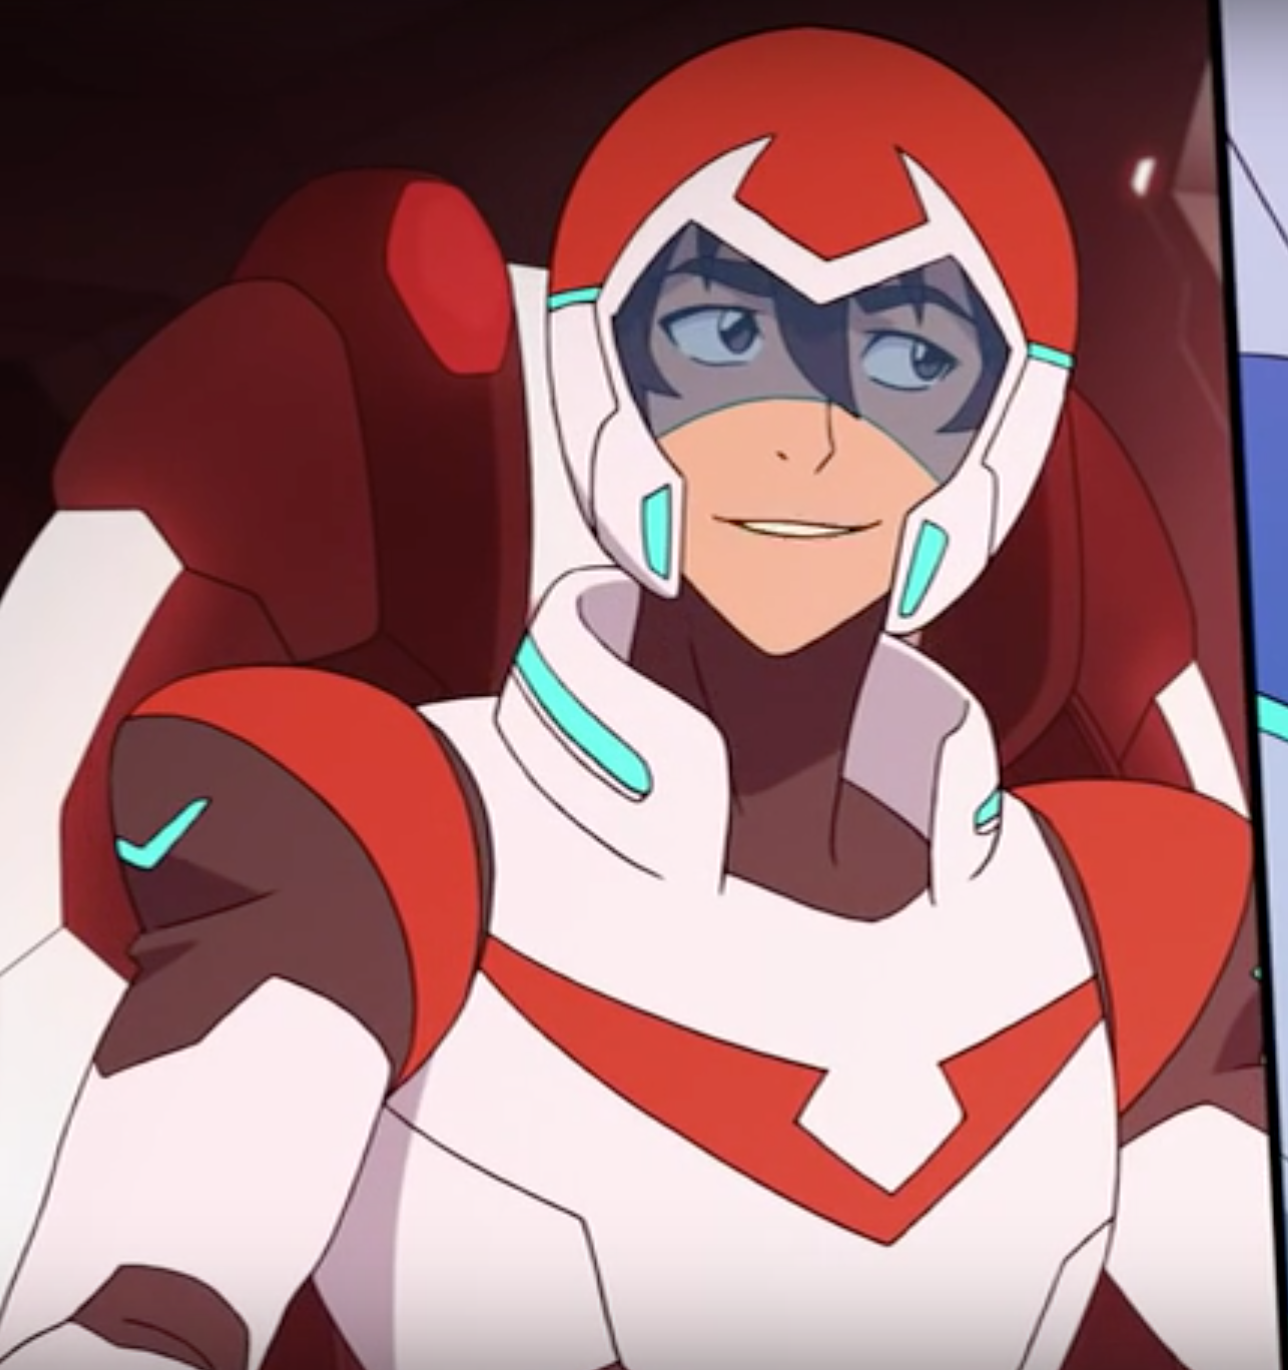 Keith the Red Paladin with a mischievous cute smile from Voltron Legendary Defender | Voltron ...